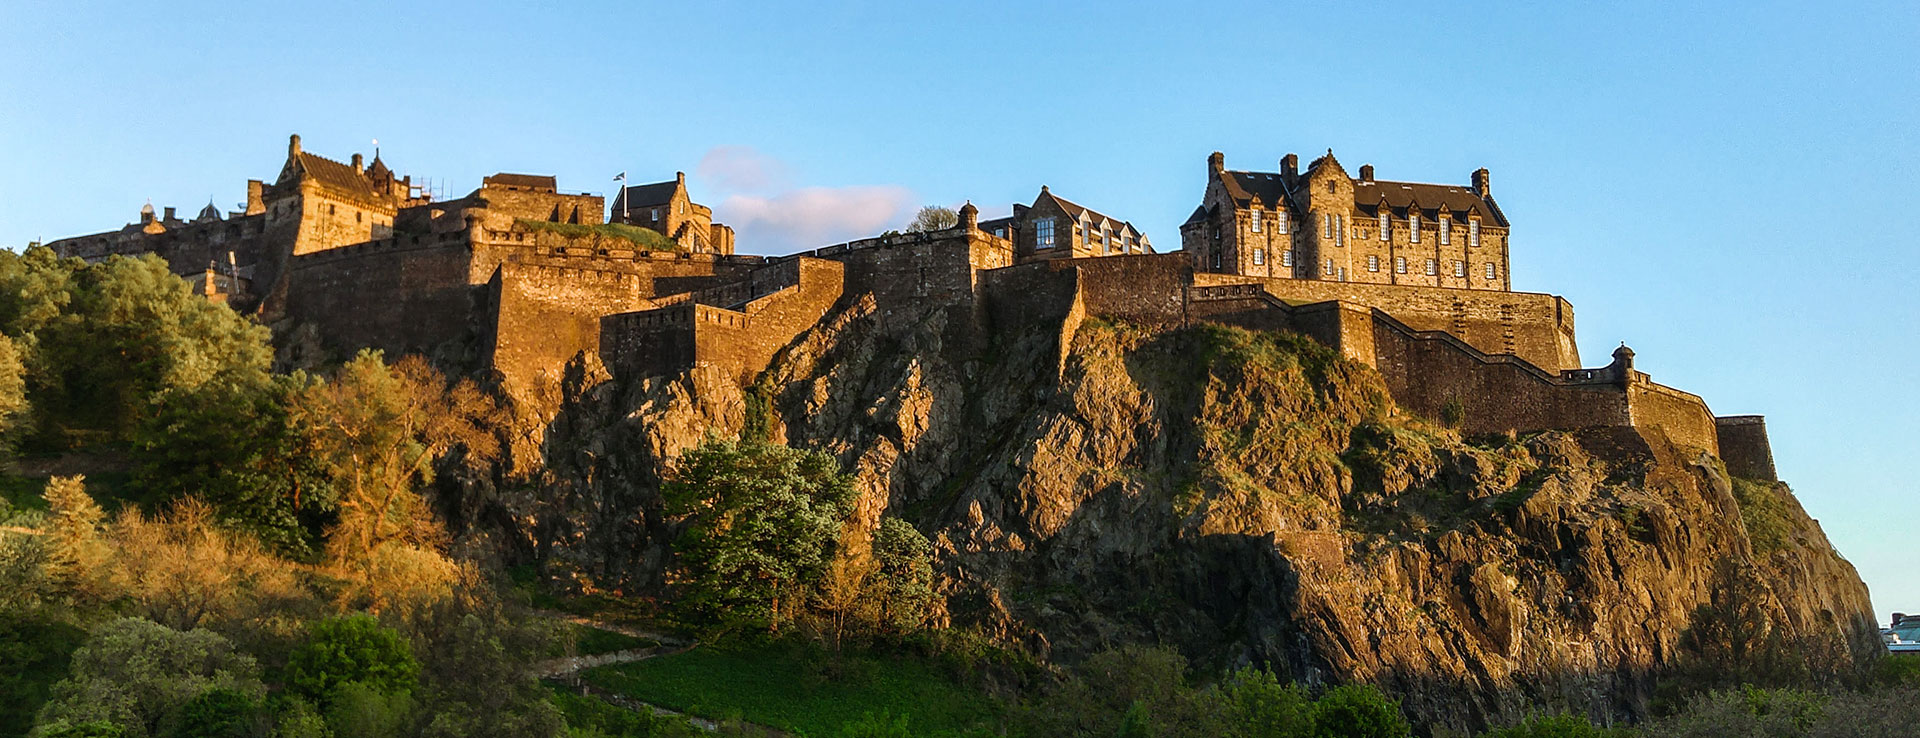 Scotland – our 4 day itinerary trough mystical mountains